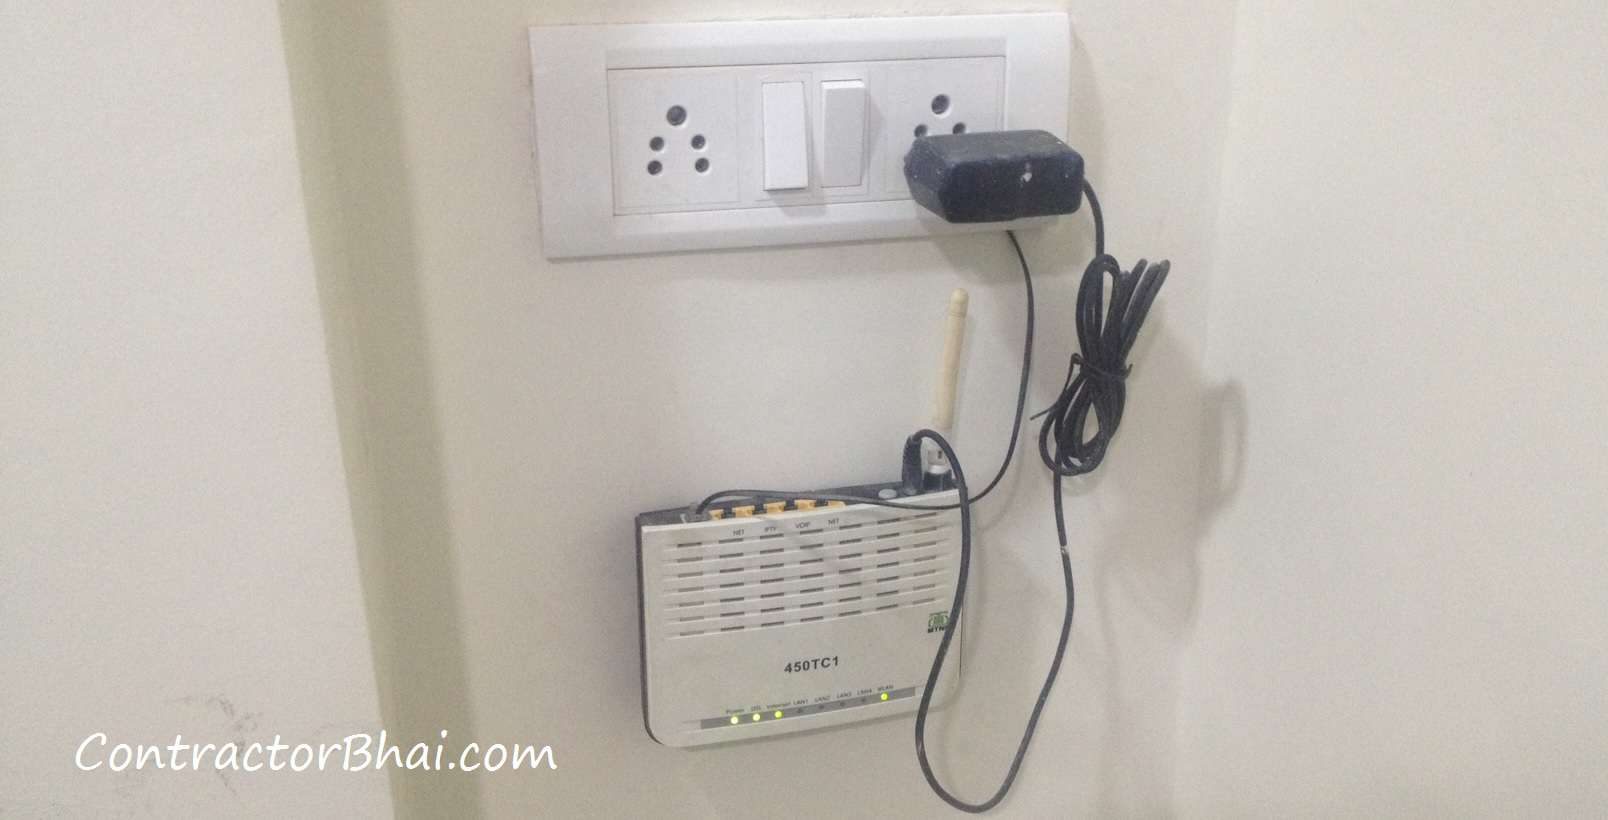 Data Cable Connection Wiring Inside Home Contractorbhai Basic Electrical On In The Internet Telephone Tv